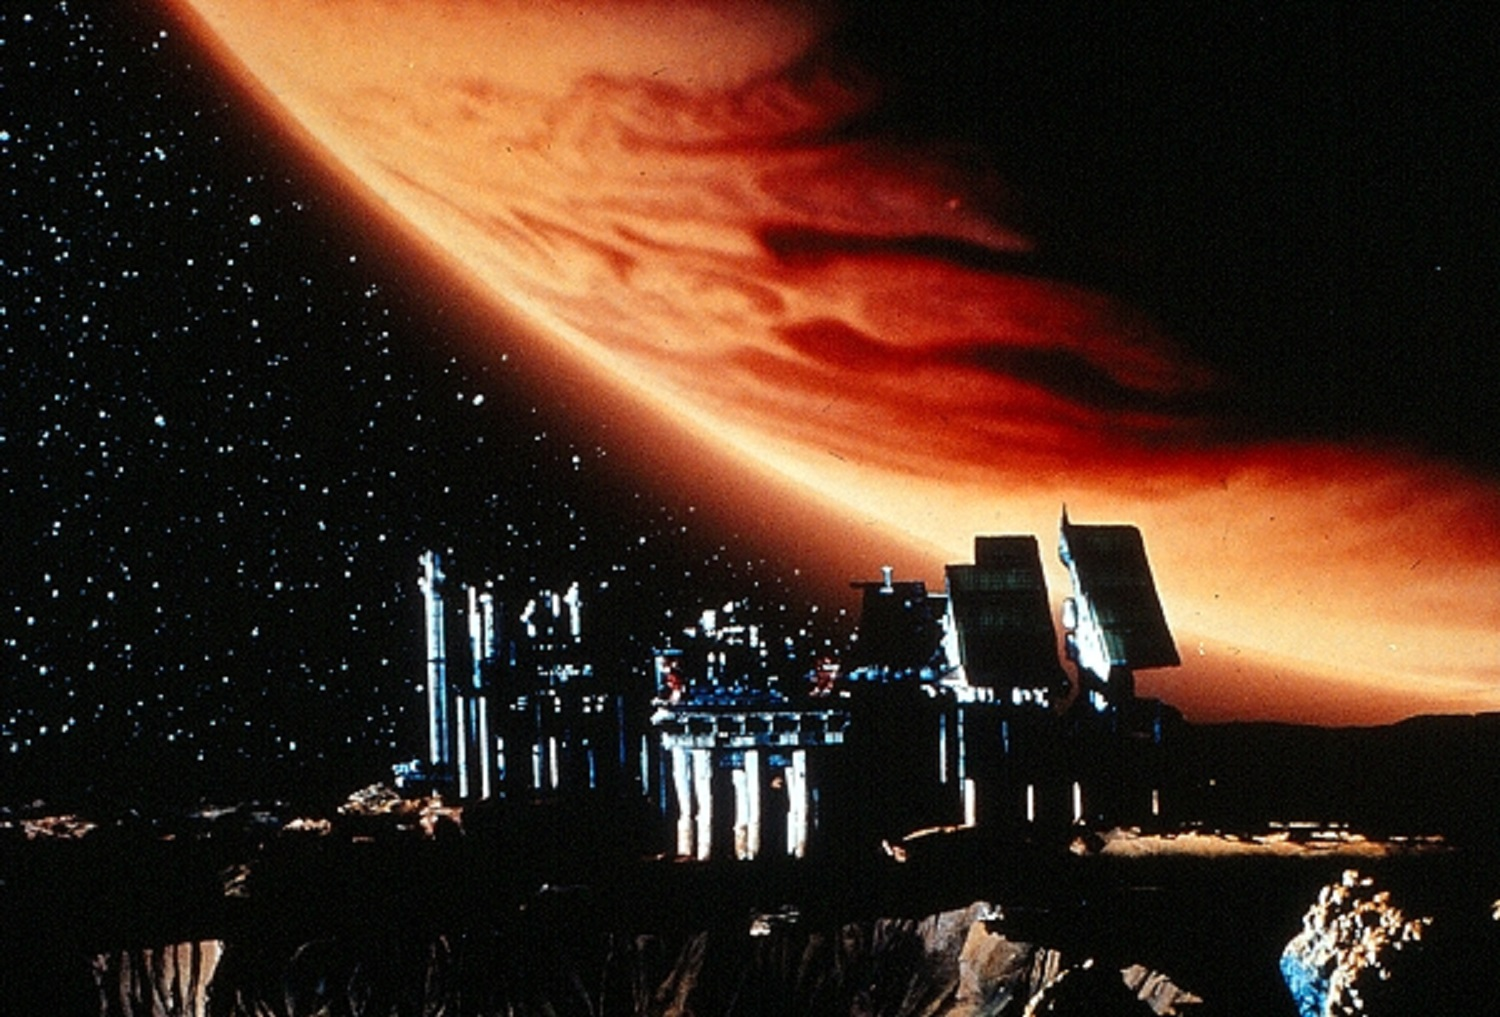 Con-Am 7 station on Jupiter's moon Io in Outland (1981)